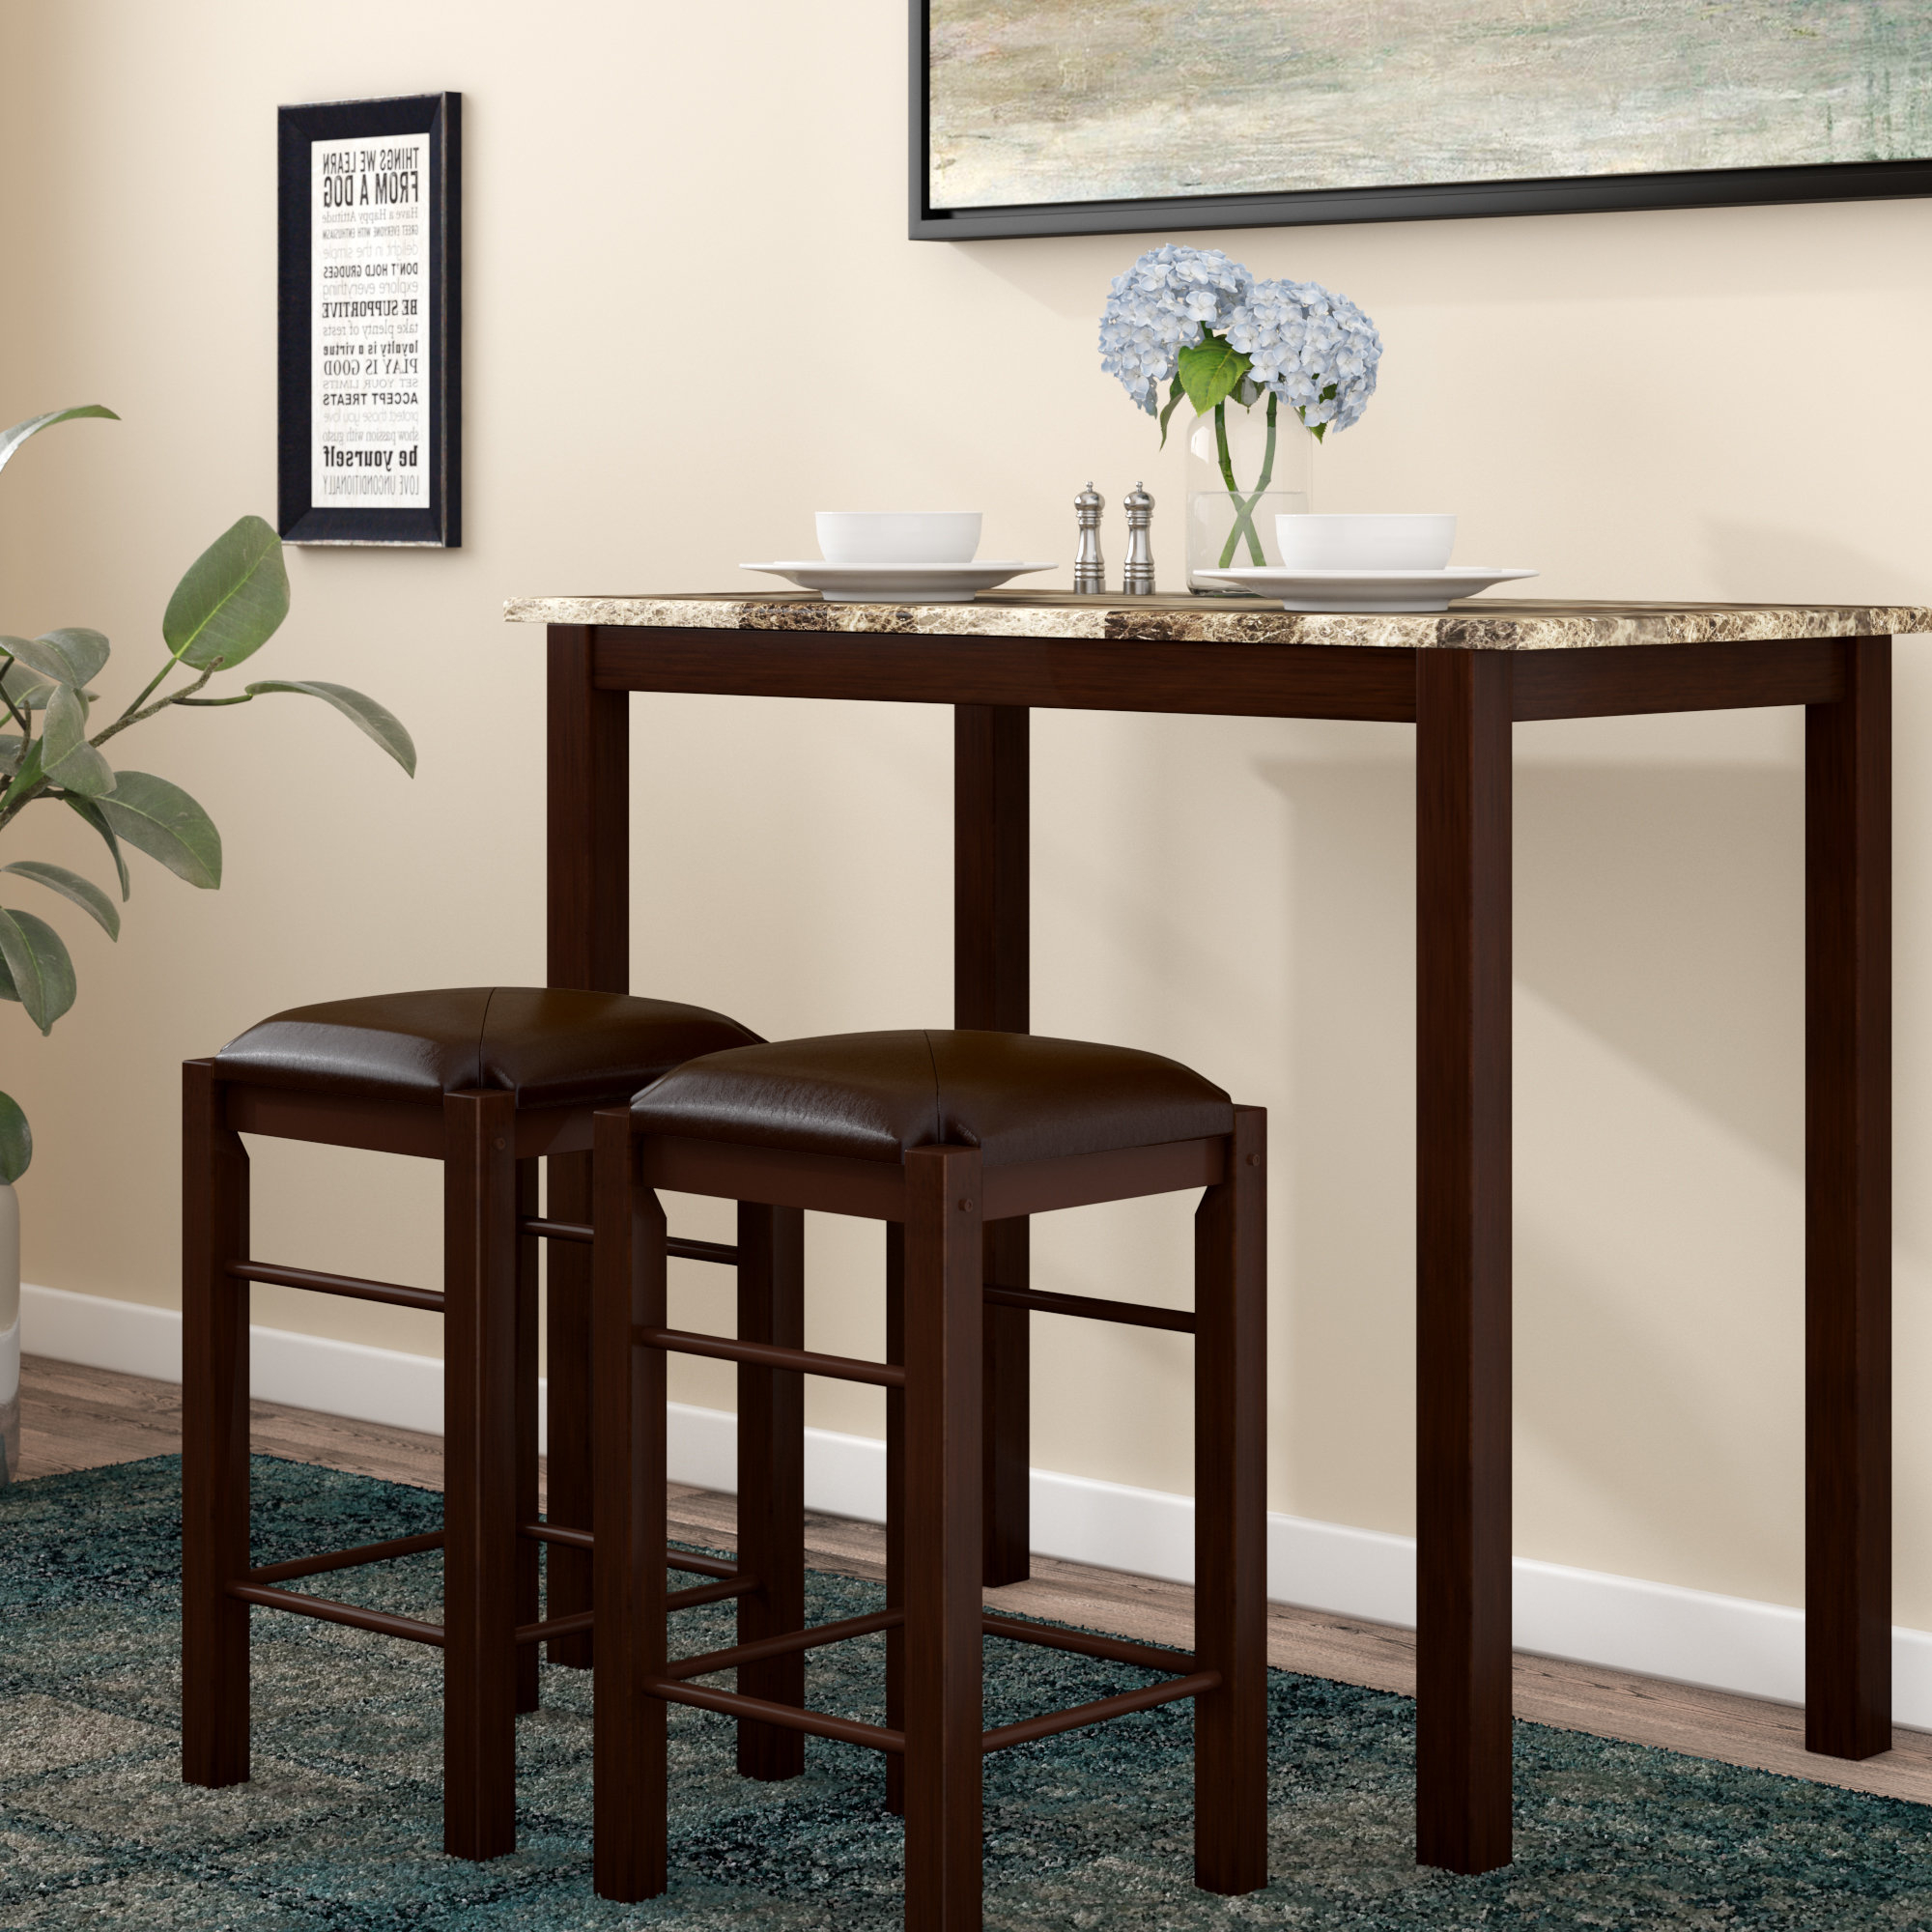 Sheetz 3 Piece Counter Height Dining Sets Inside Most Recent Penelope 3 Piece Counter Height Wood Dining Set (View 6 of 20)